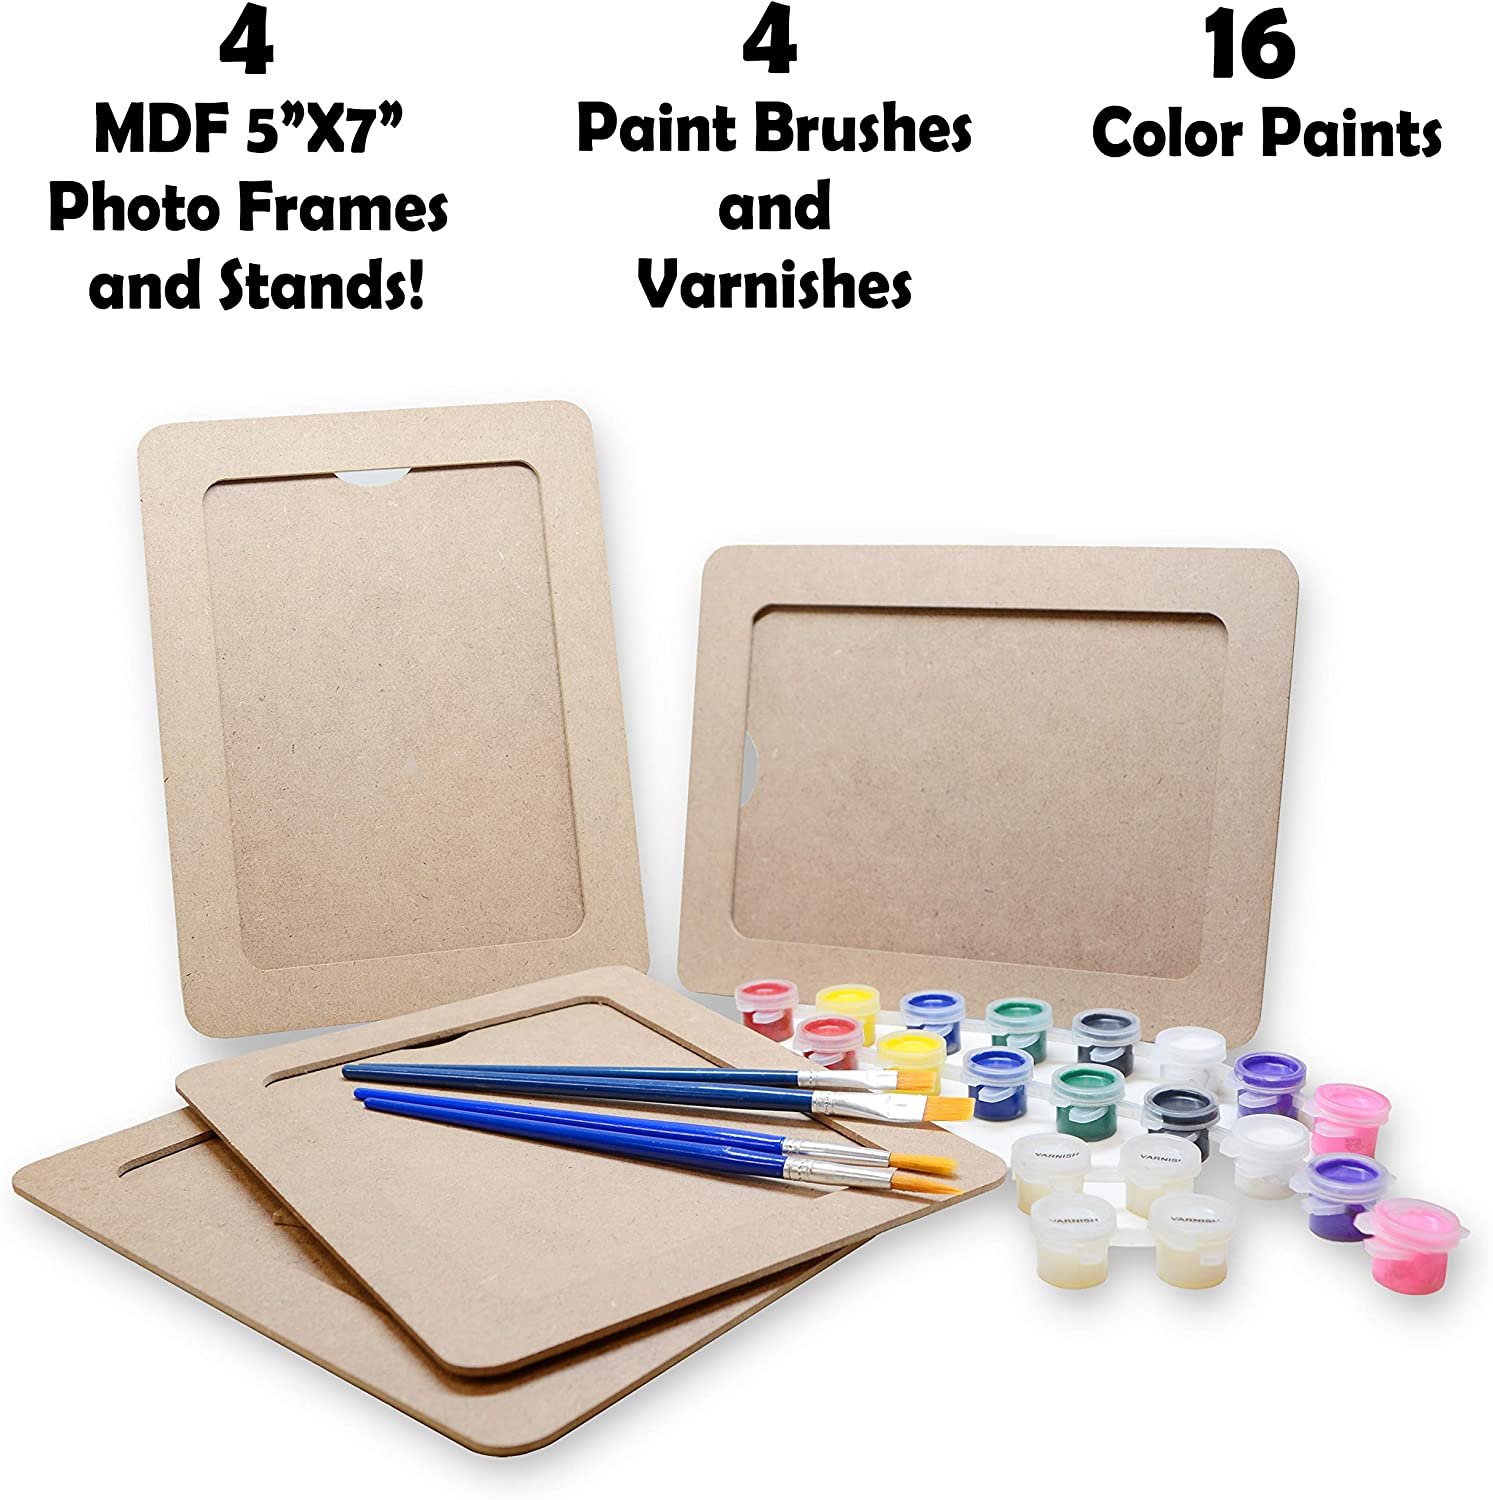 Classroom Arts and Crafts Party Favors for Kids VHALE Paint Your Own Picture Frame 5 x 7 inch 4 Sets of MDF Wood Photo Frames with Stand for Children to Paint and Decorate